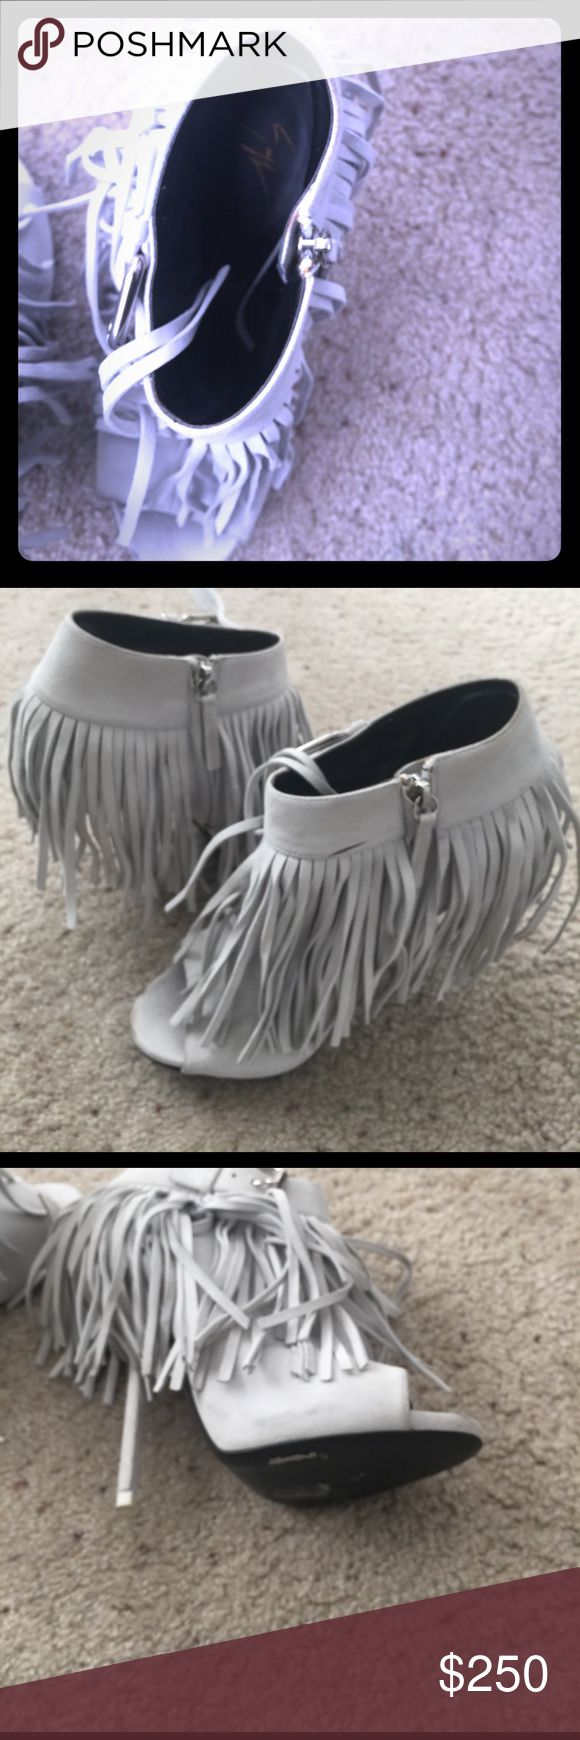 Giuseppe Zanotti design booties Only worn once in good condition.a few marks in the front that can be cleaned.its authentic Giuseppe zanotti design.runs half size small Giuseppe Zanotti Shoes Ankle Boots & Booties